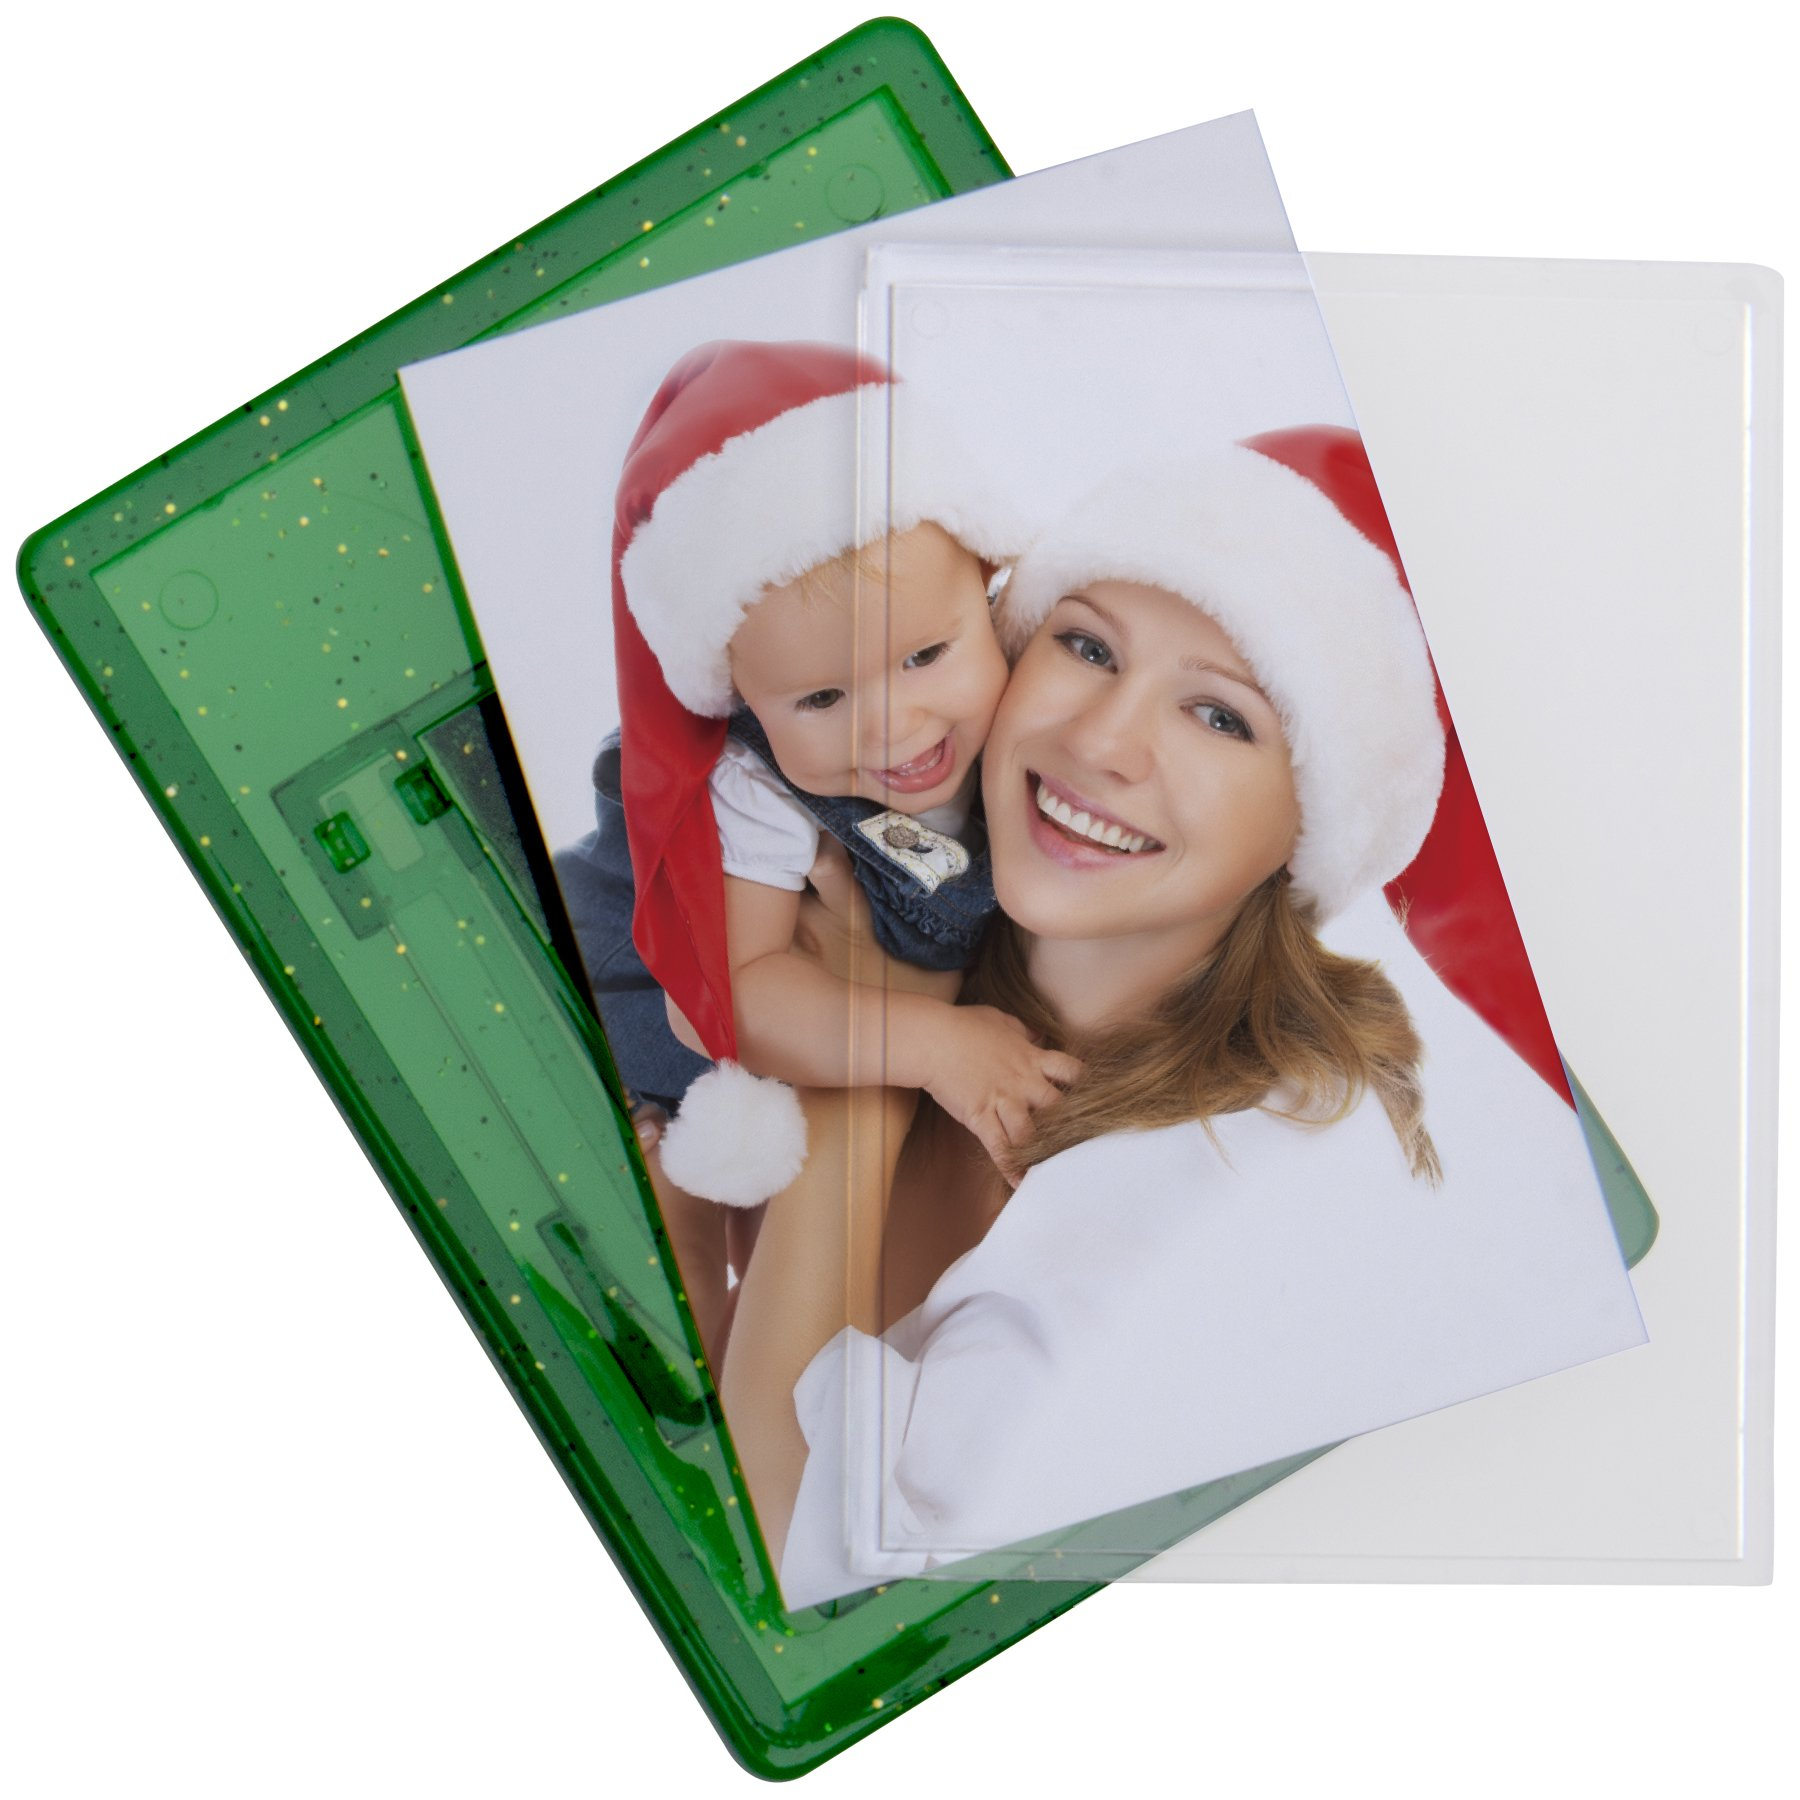 Snapins Green Photo Magnet Frames - 100 Pack